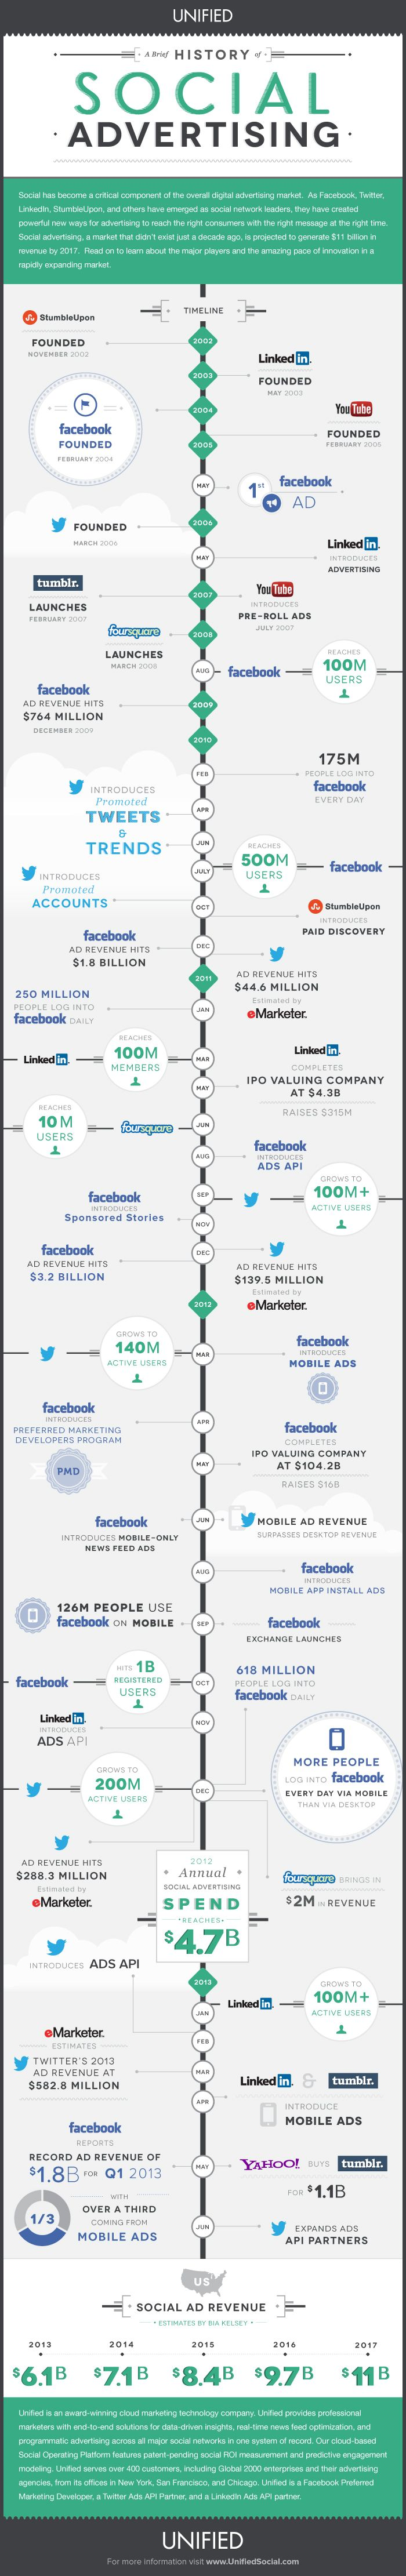 A Very Brief History of Social Advertising | Infoporn